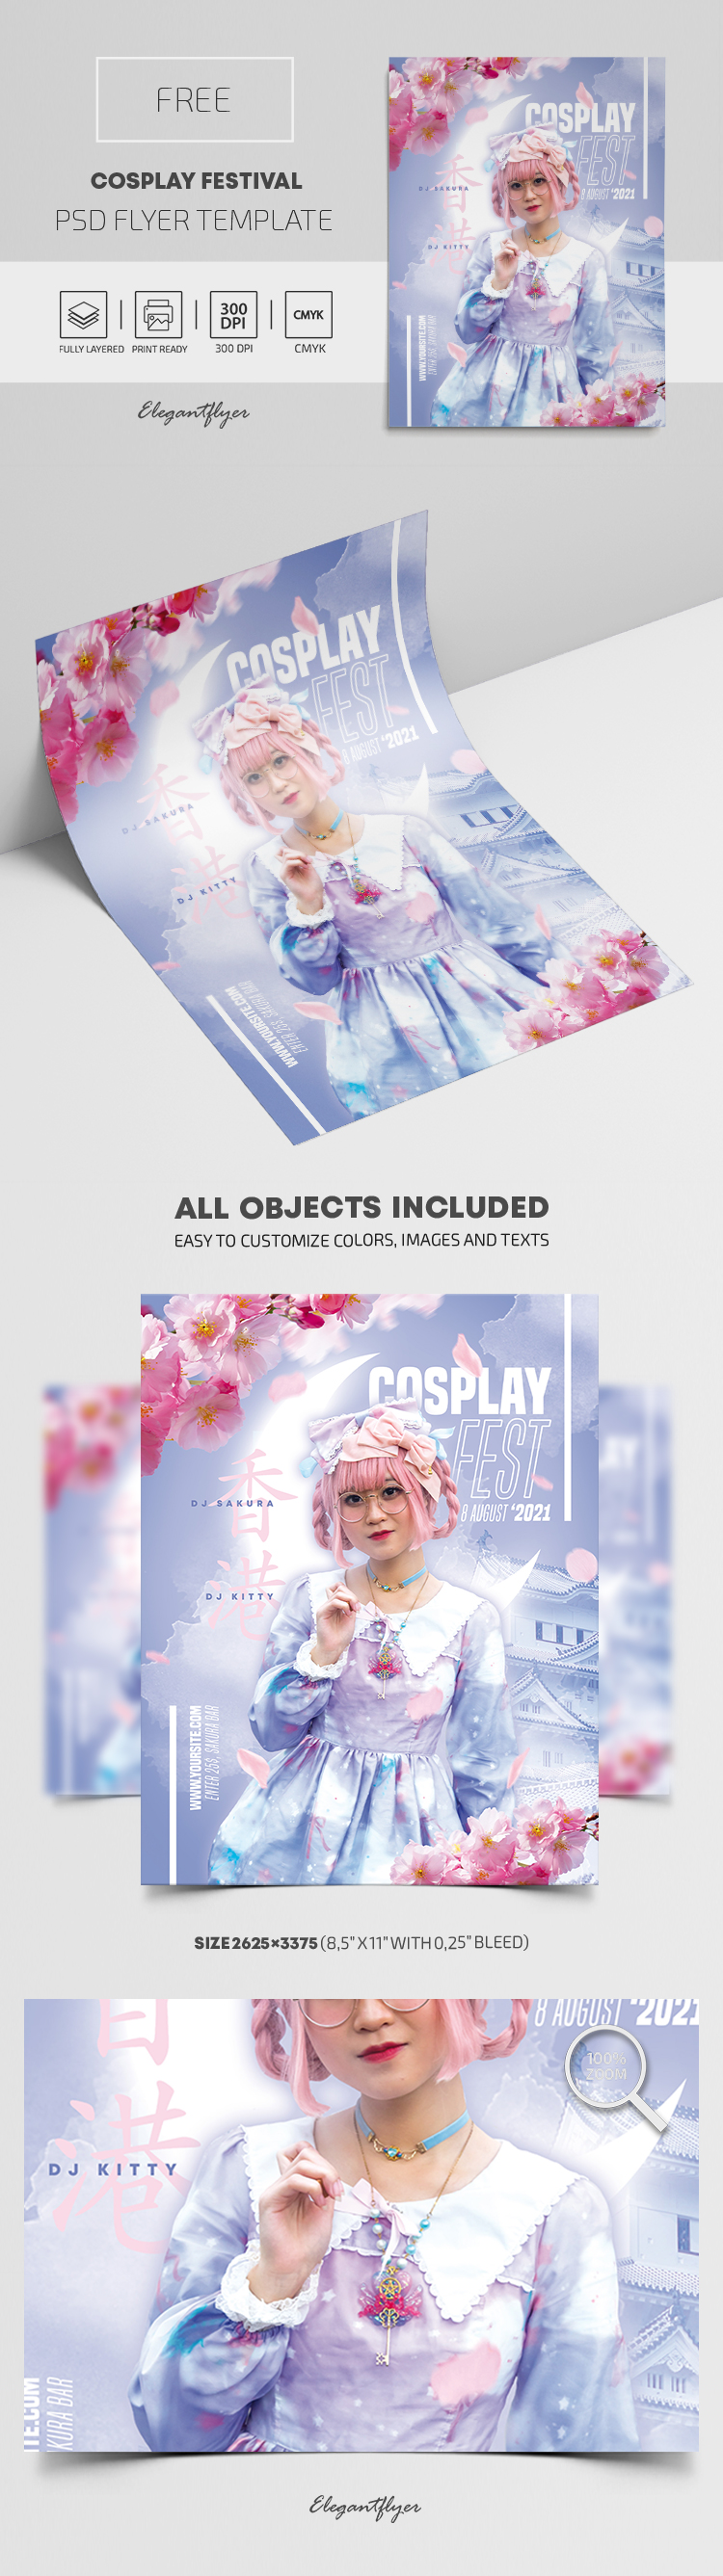 Cosplay Festival – Free Flyer PSD Template